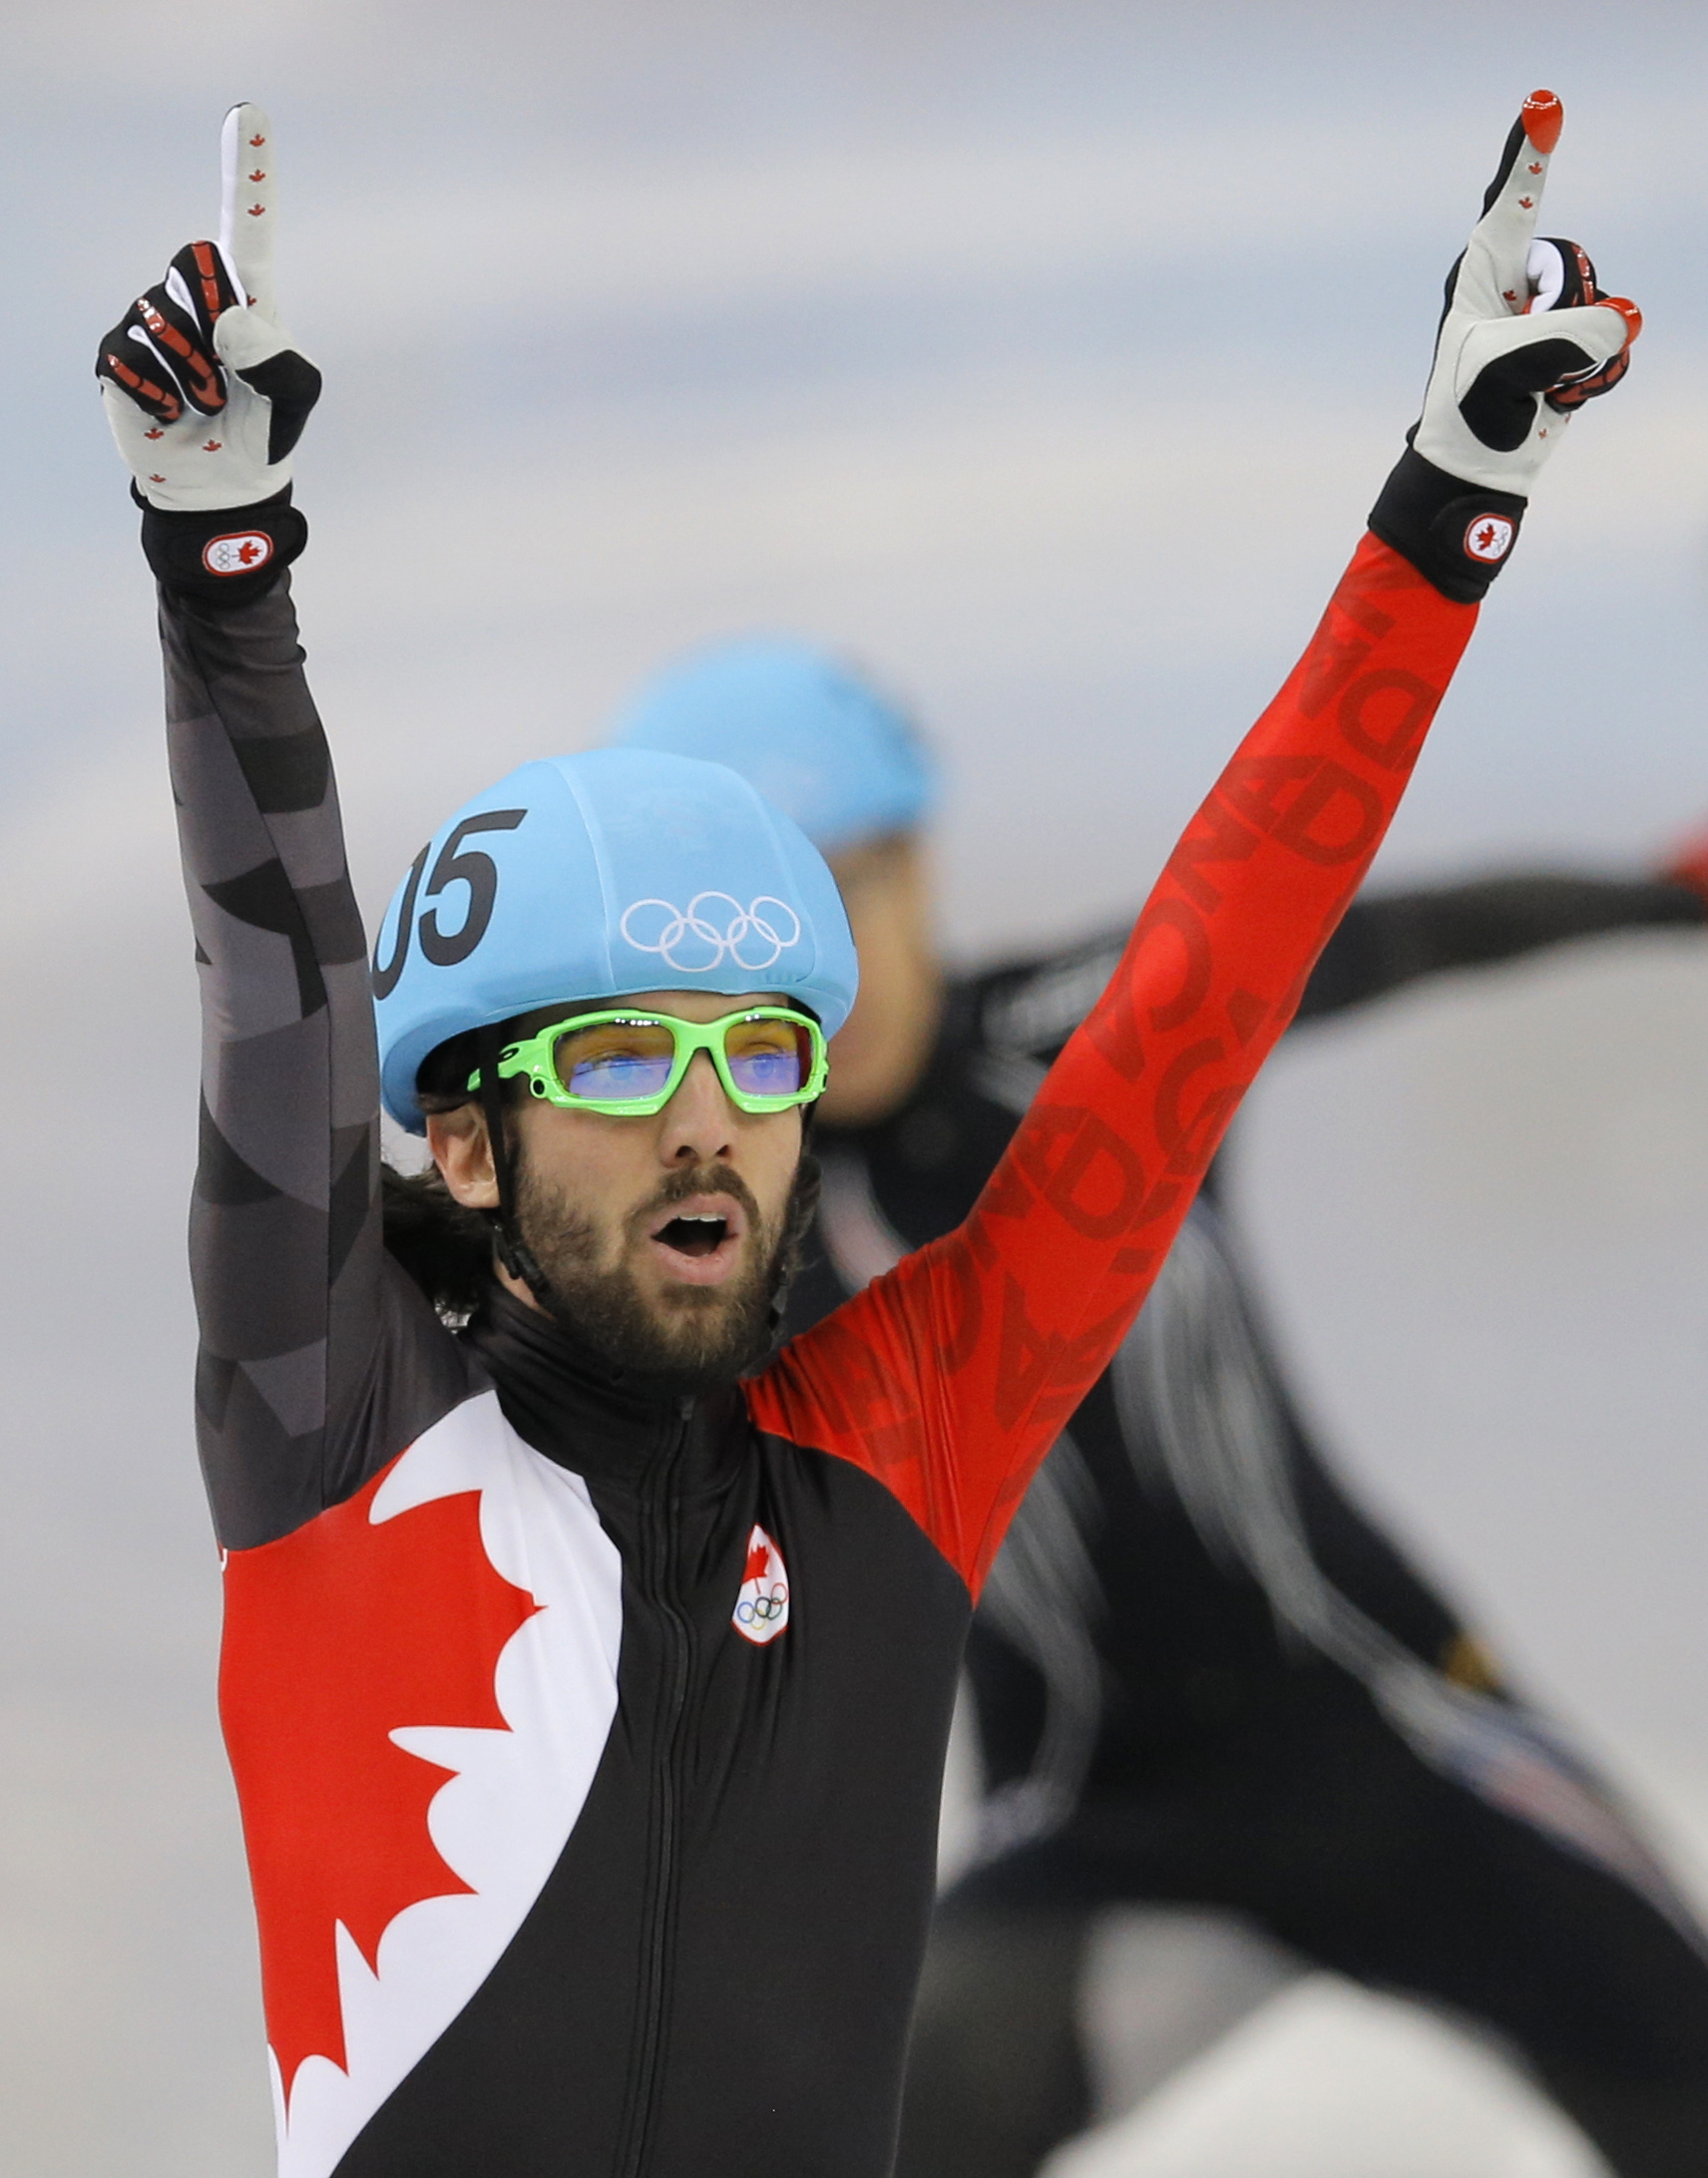 Charles Hamelin of Canada celebrates winning the men's 1500m short track speedskating final at the Iceberg Skating Palace during the 2014 Winter Olympics, Monday, Feb. 10, 2014, in Sochi, Russia. (AP Photo/Vadim Ghirda)